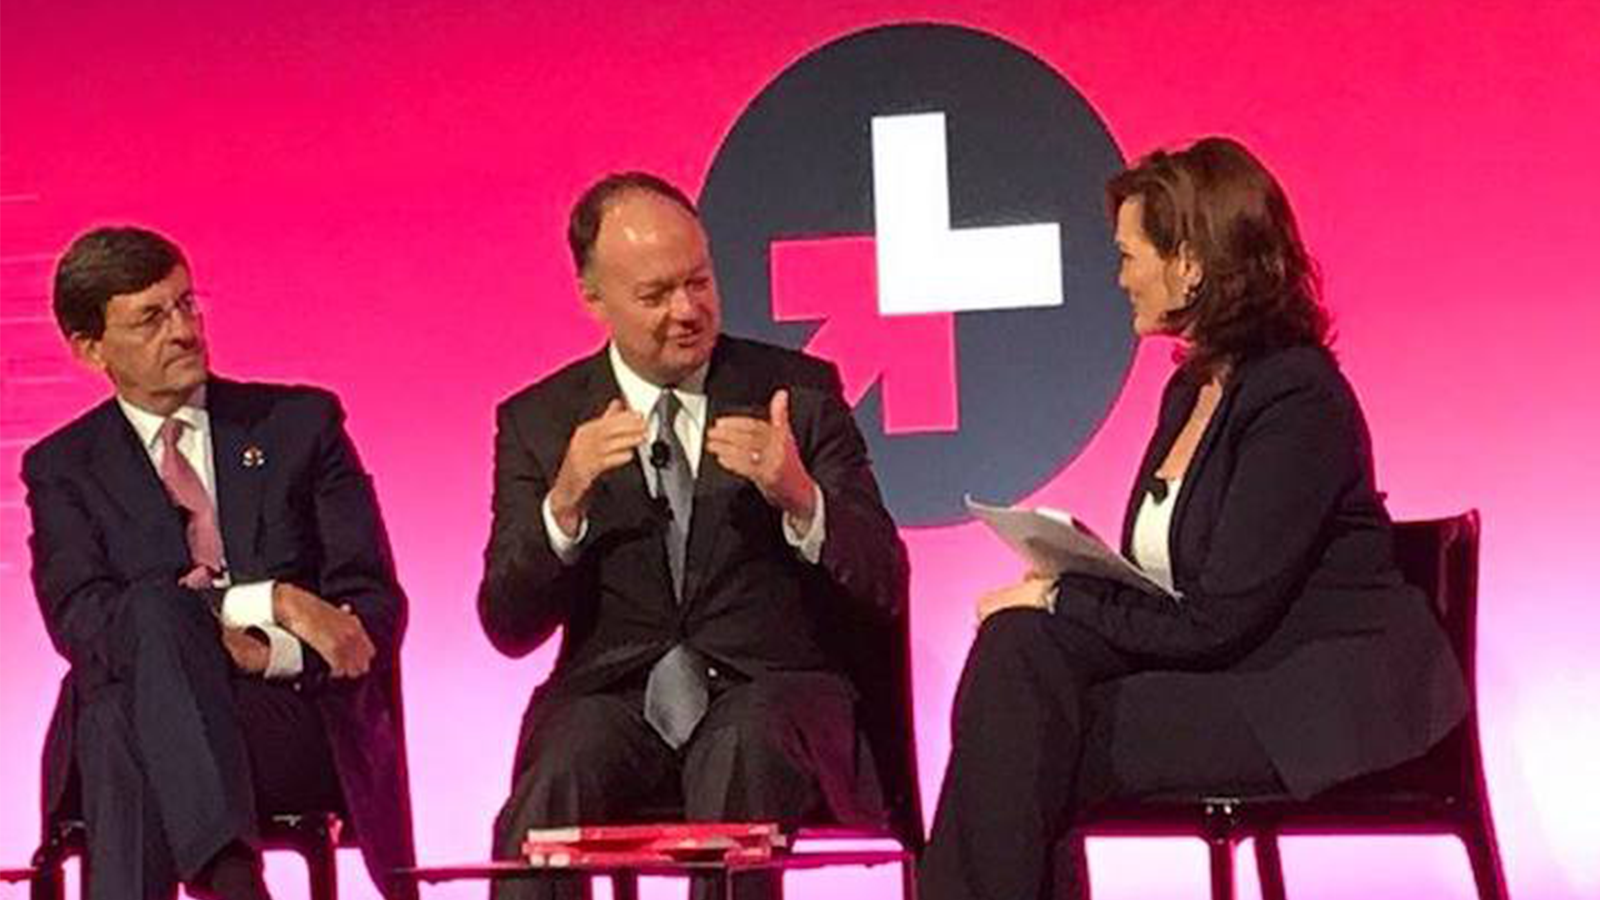 President DeGioia talks with other panelists at the September 2018 HeForShe Summit.